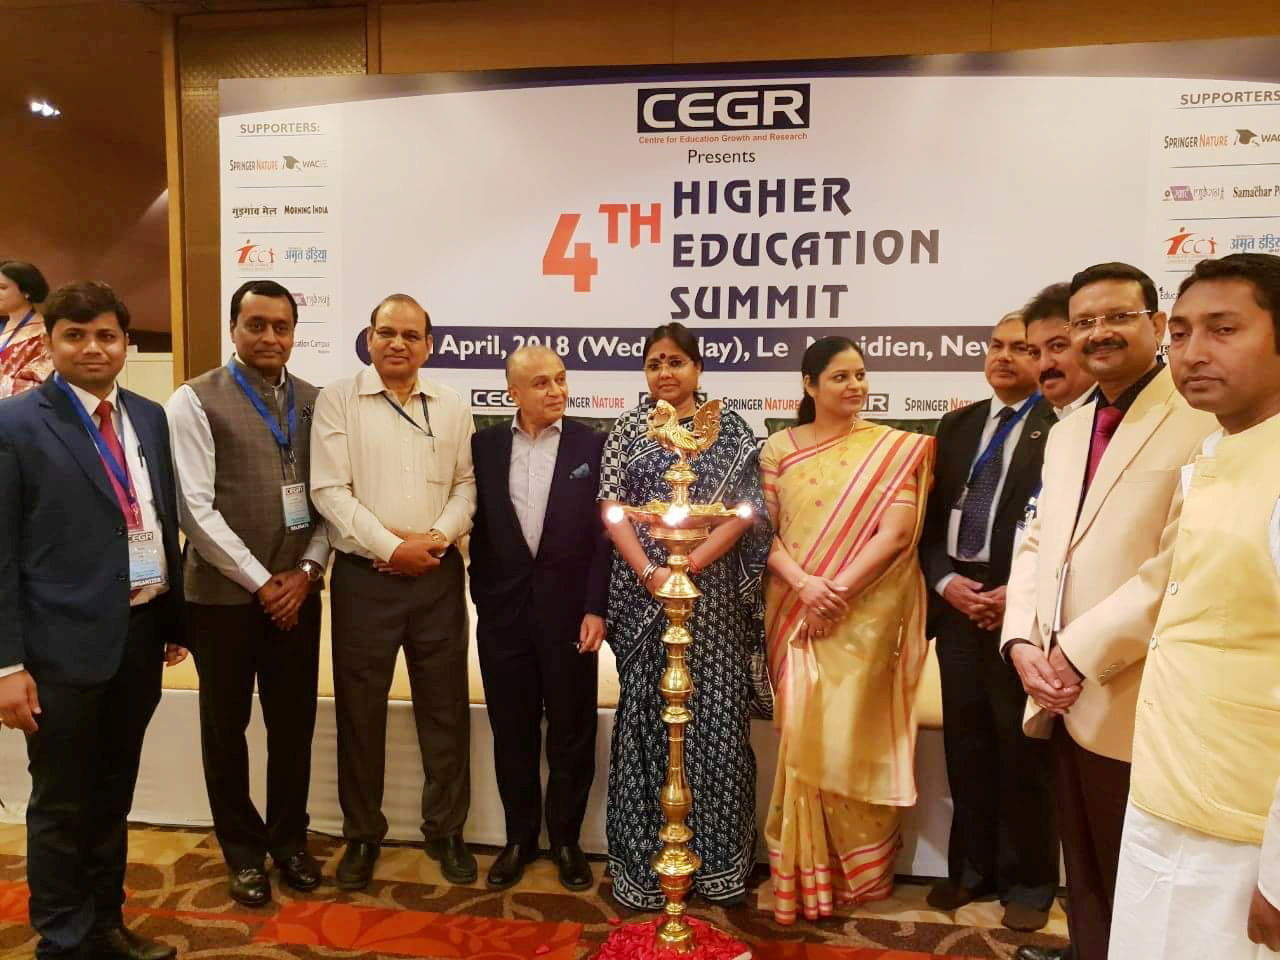 HGU welcoming the participants during the Fourth Higher Education Summit